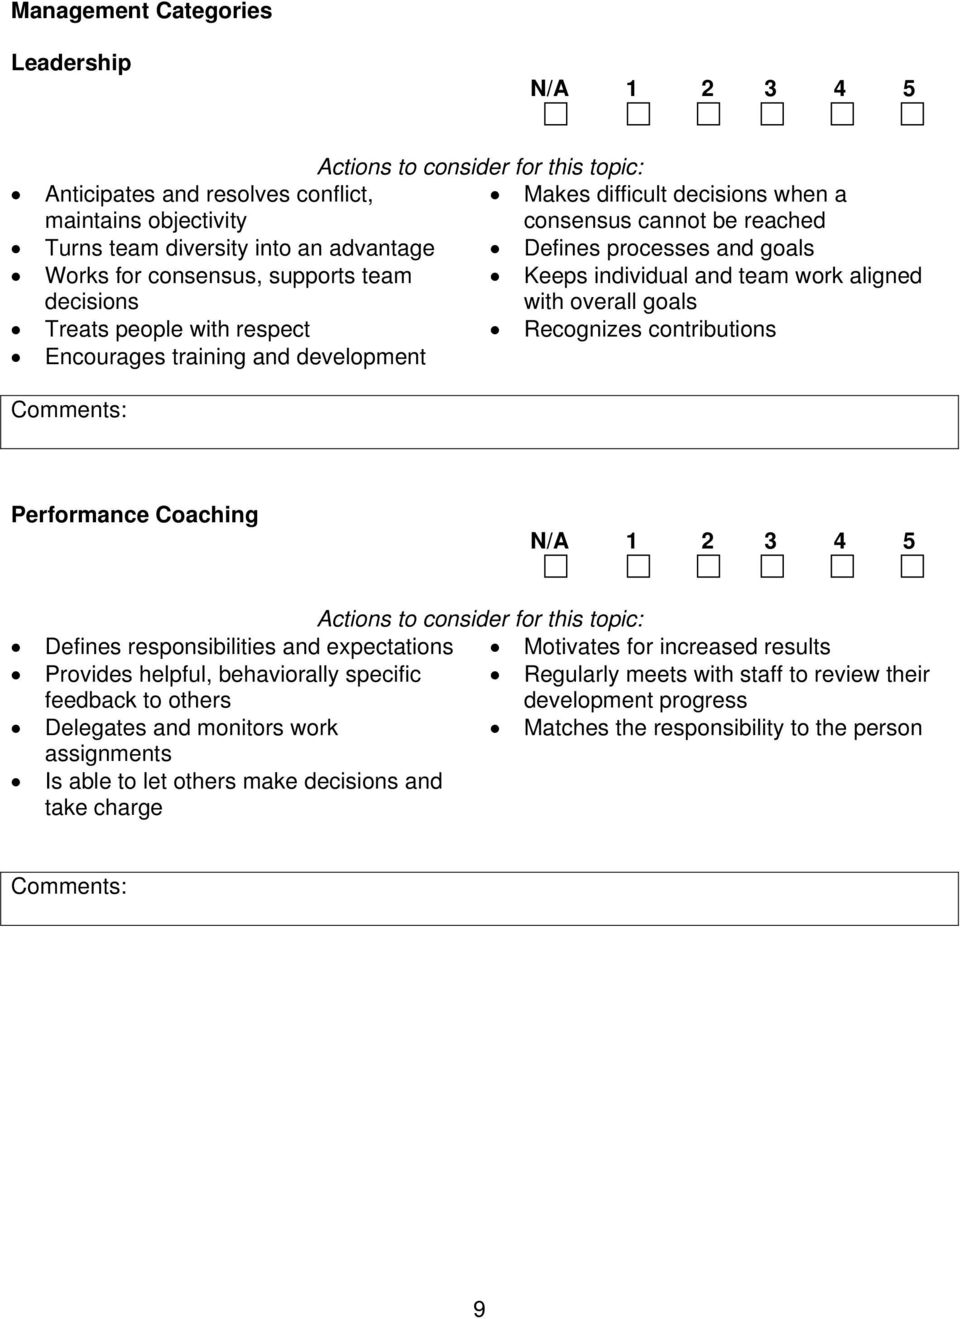 Encourages training and development Performance Coaching Defines responsibilities and expectations Motivates for increased results Provides helpful, behaviorally specific feedback to others